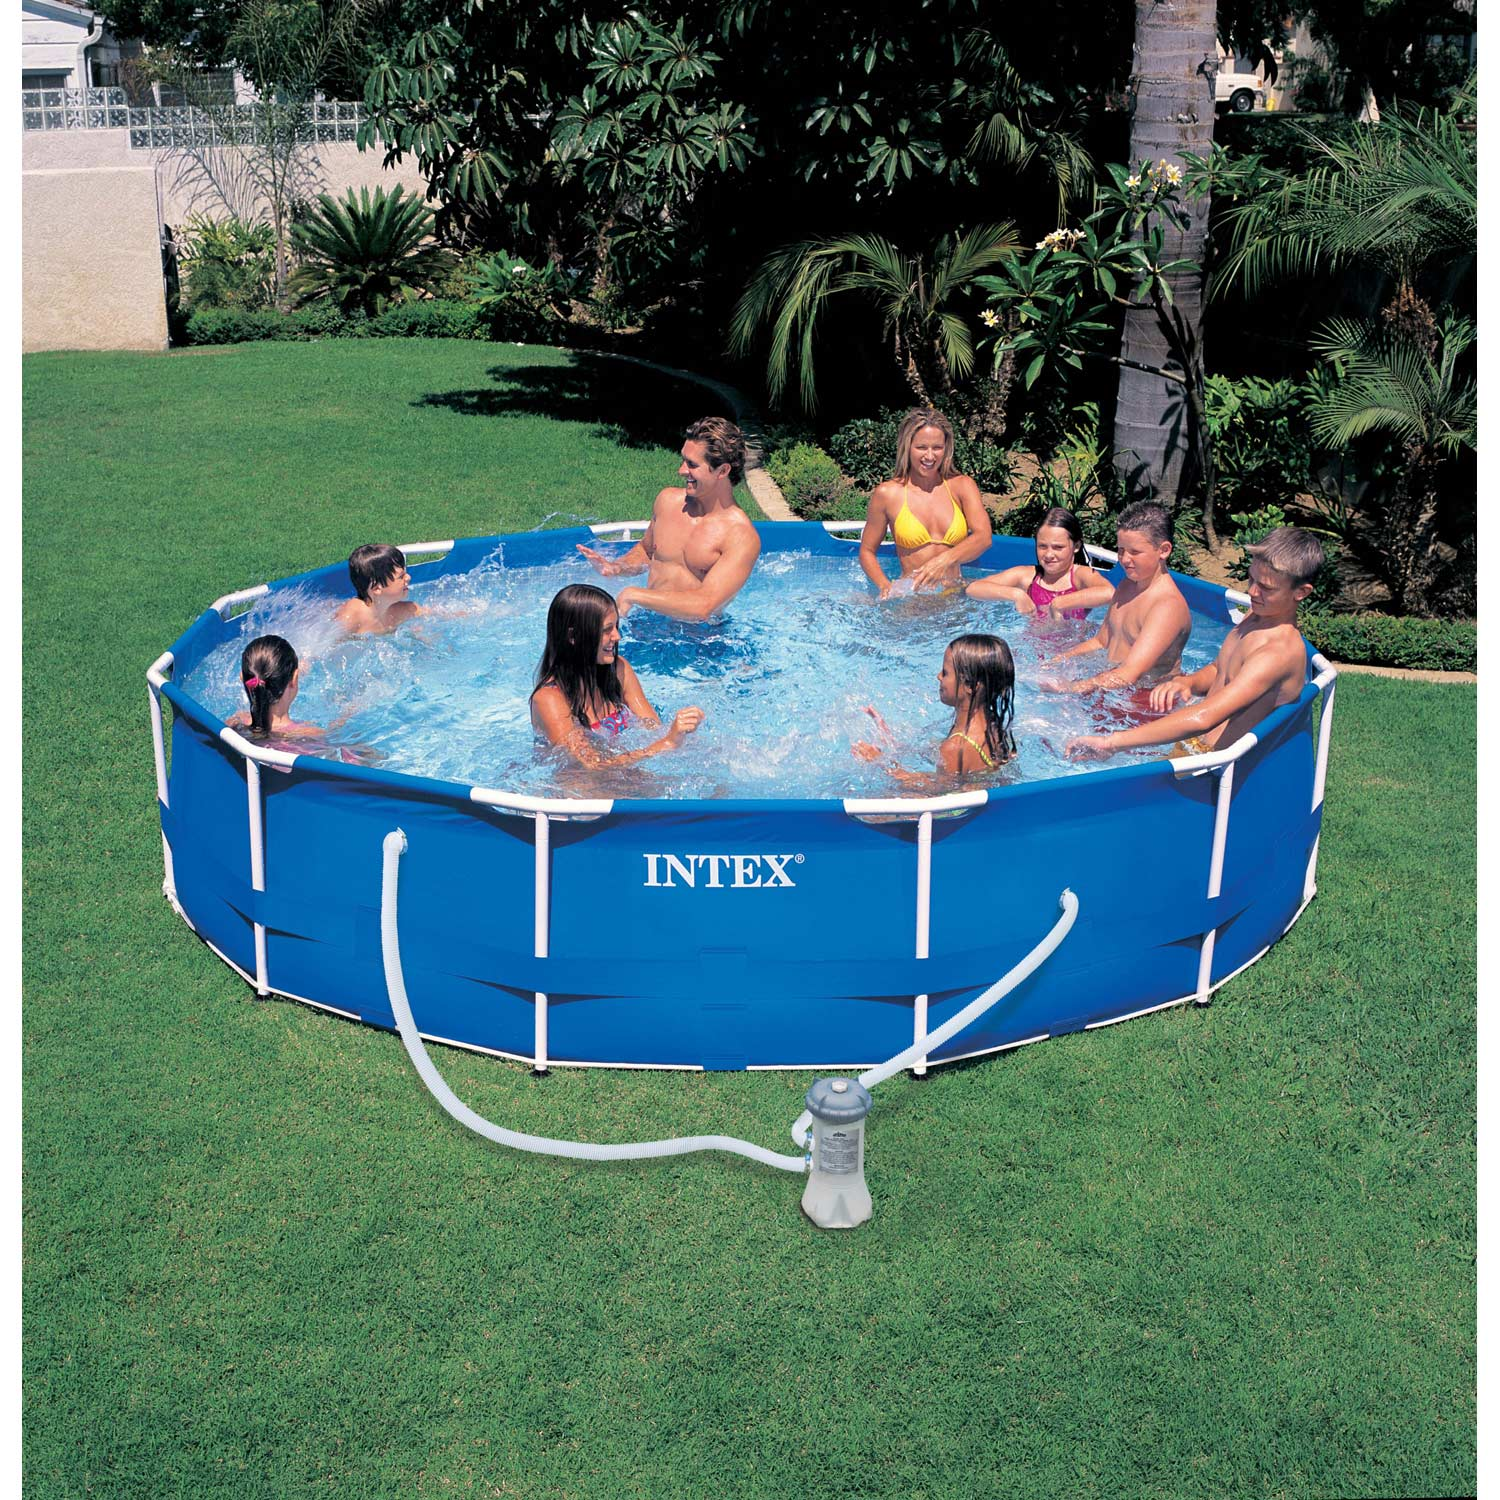 Piscine hors sol autoportante tubulaire metal frame intex for Piscine hors sol amenagee